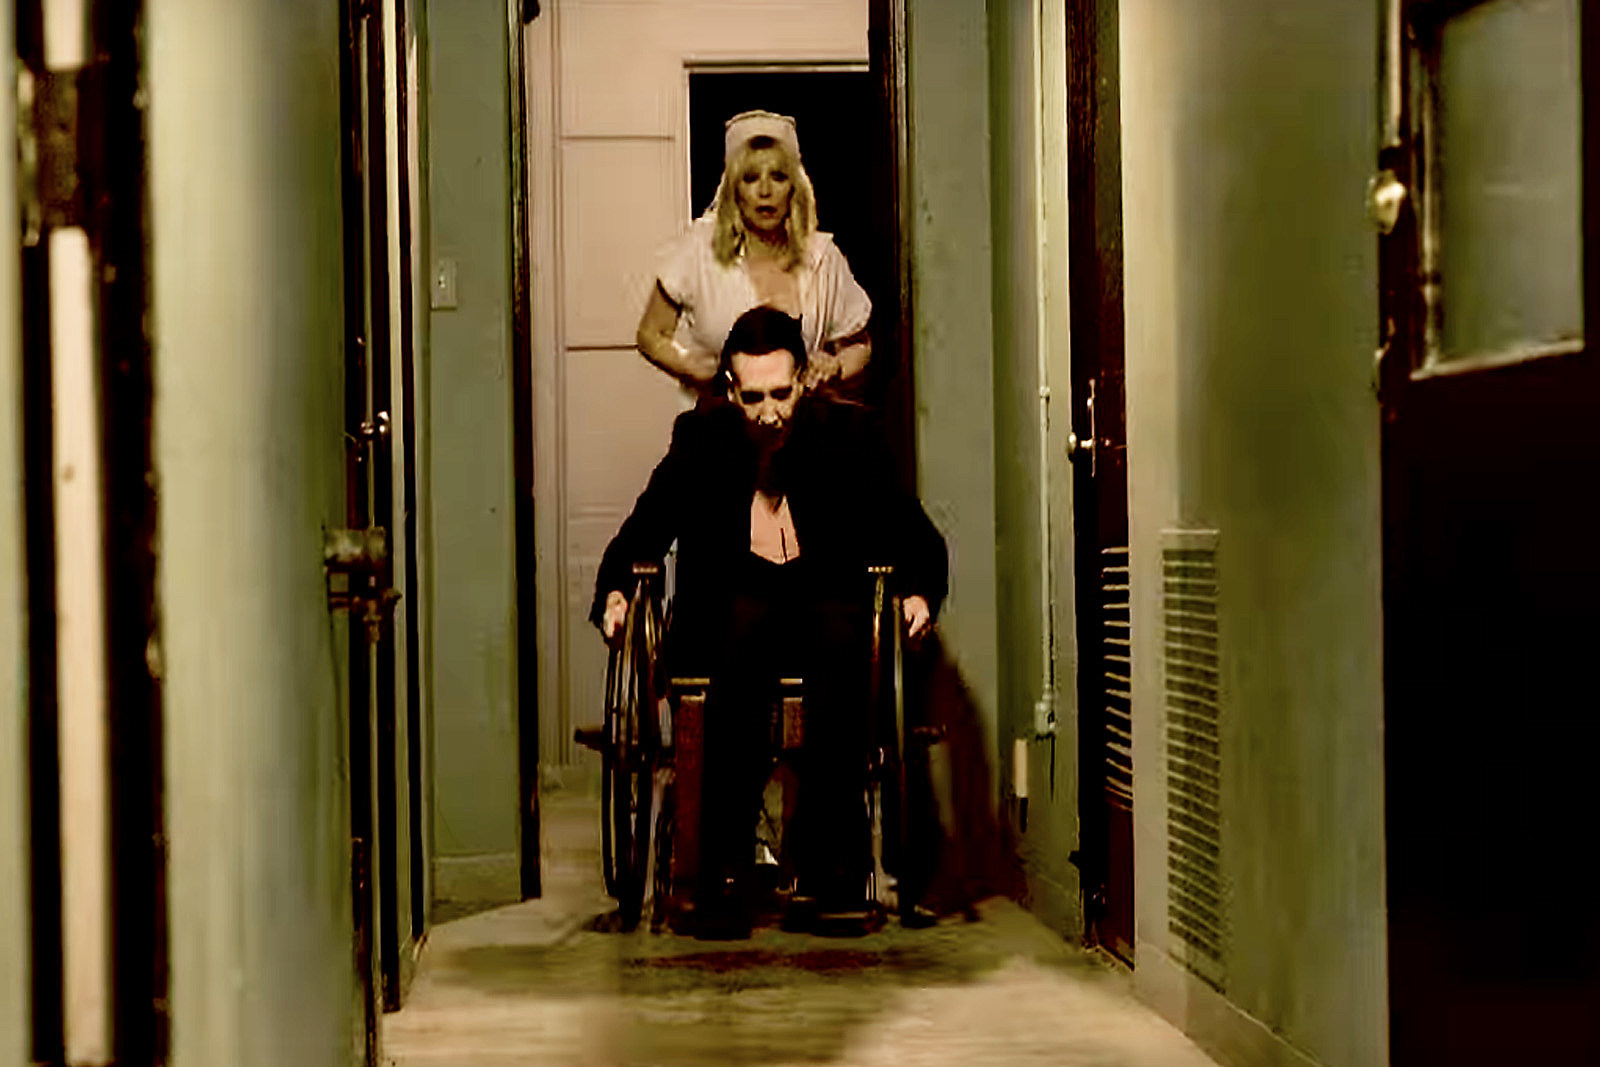 Watch Marilyn Manson and Courtney Love's New Video